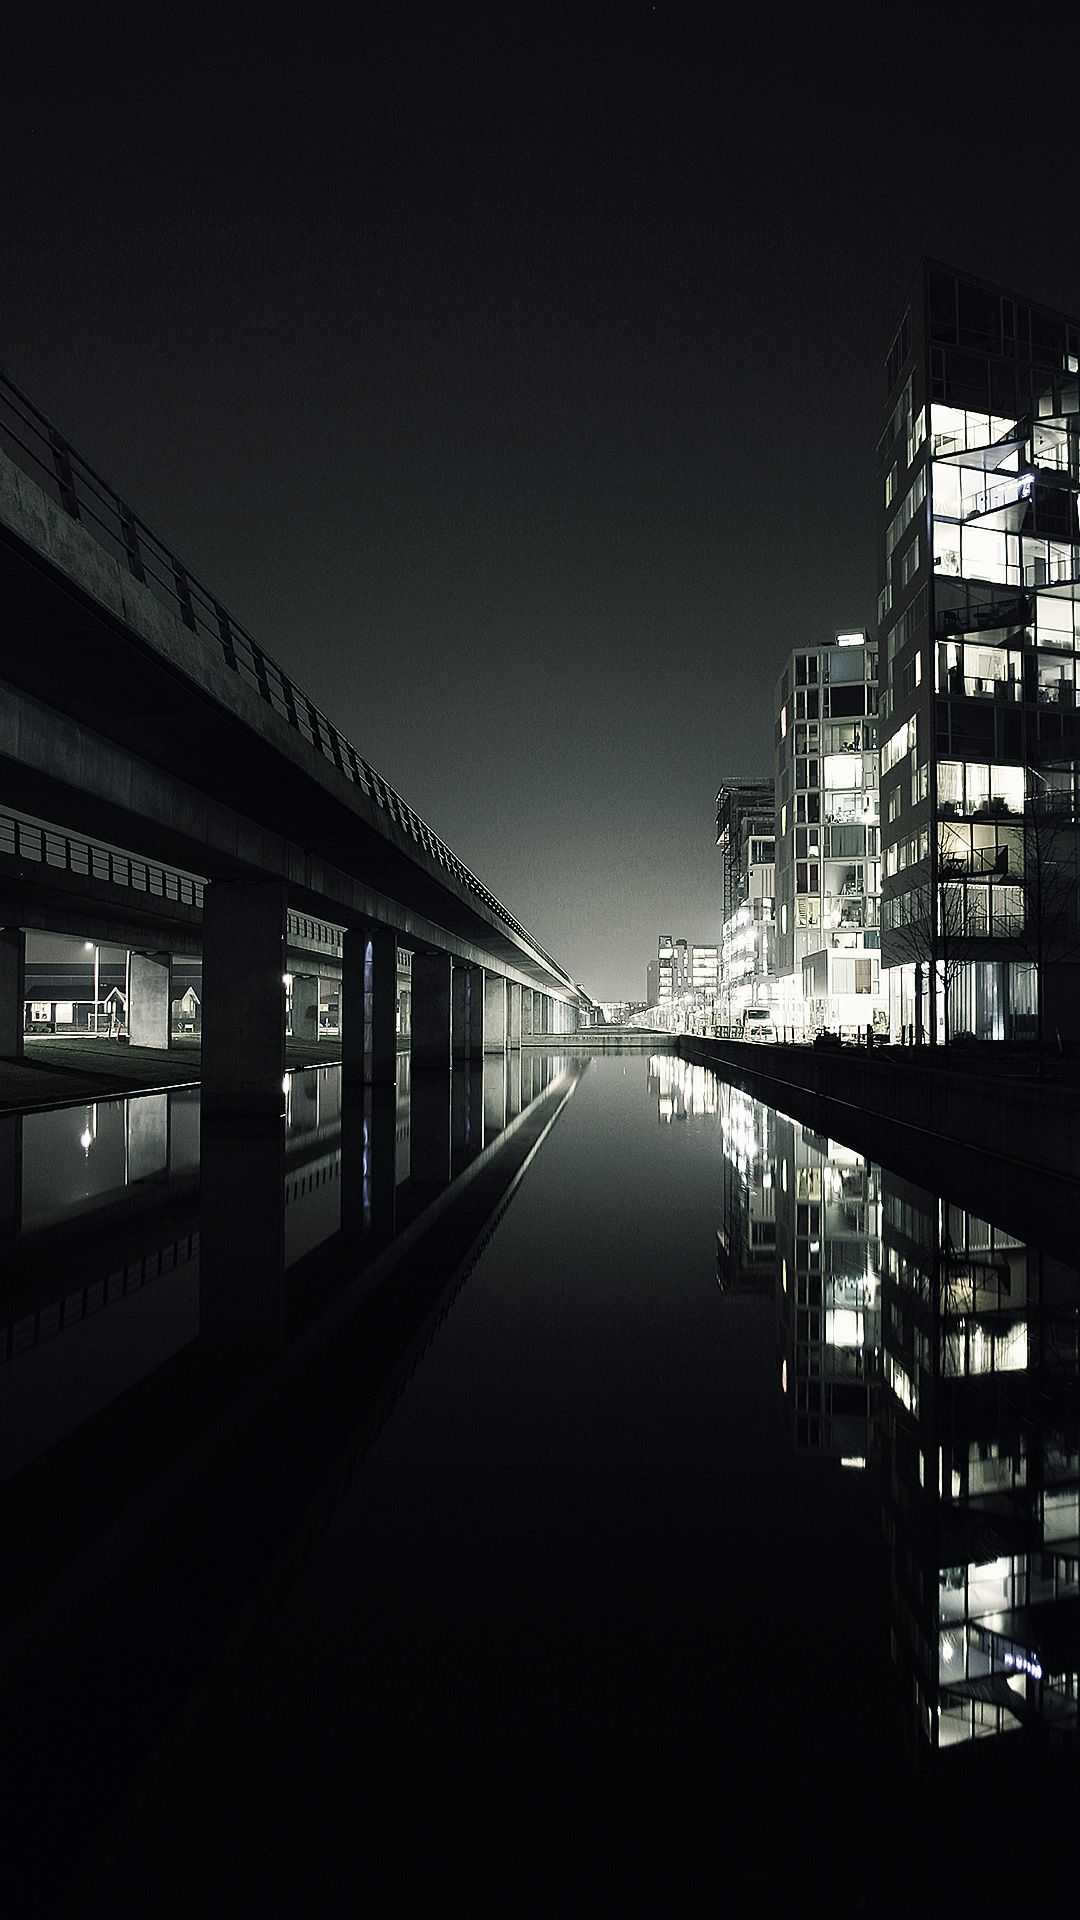 Dark City View Beside Lake Landscape Iphone 6 Wallpaper Art